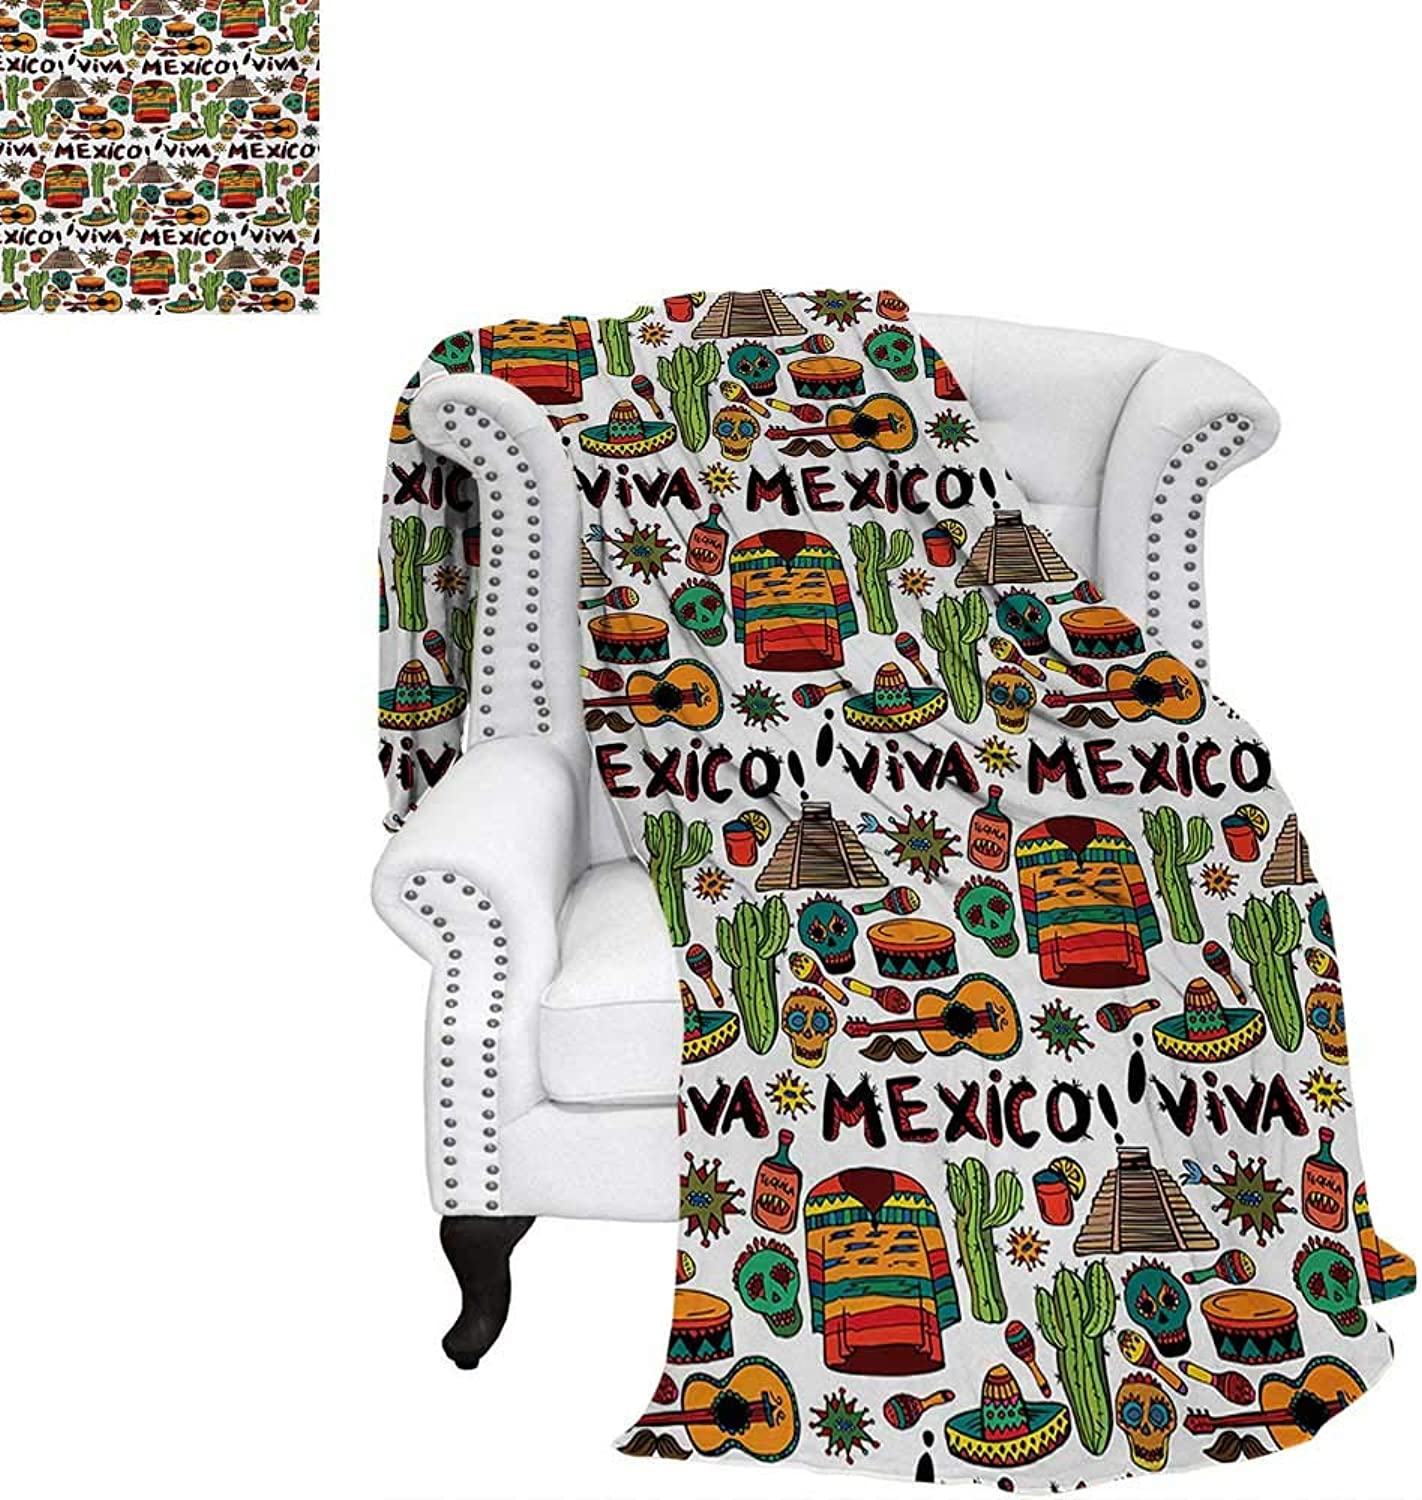 Mexican Summer Quilt Comforter Viva Mexico Native Elements Poncho Tequila Salsa Hot Peppers Image Digital Printing Blanket 60 x50  Multicolor